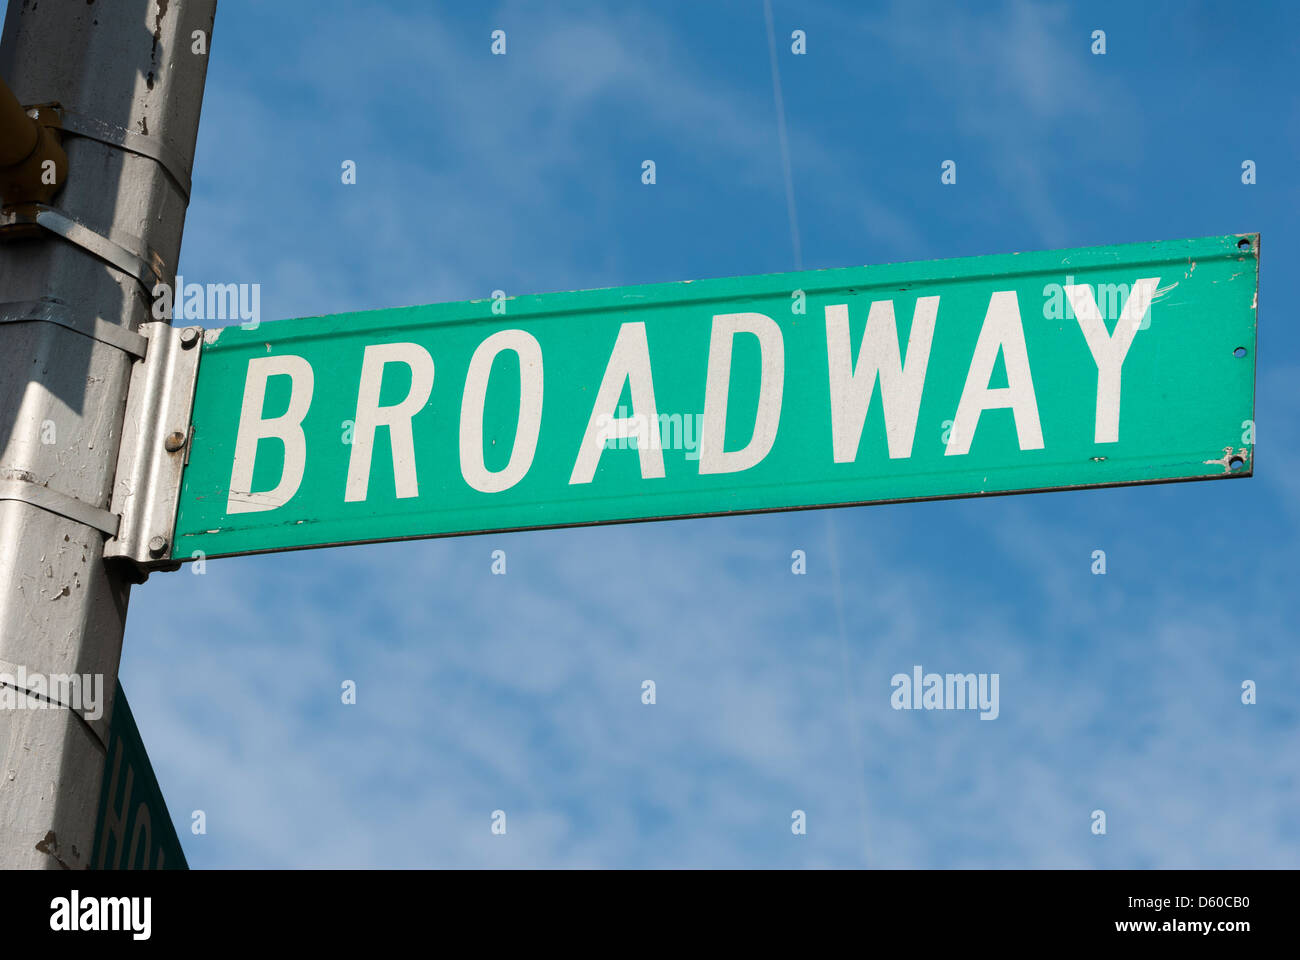 Broadway, street sign in New York City, New York, USA, North America - Image taken from public ground - Stock Image